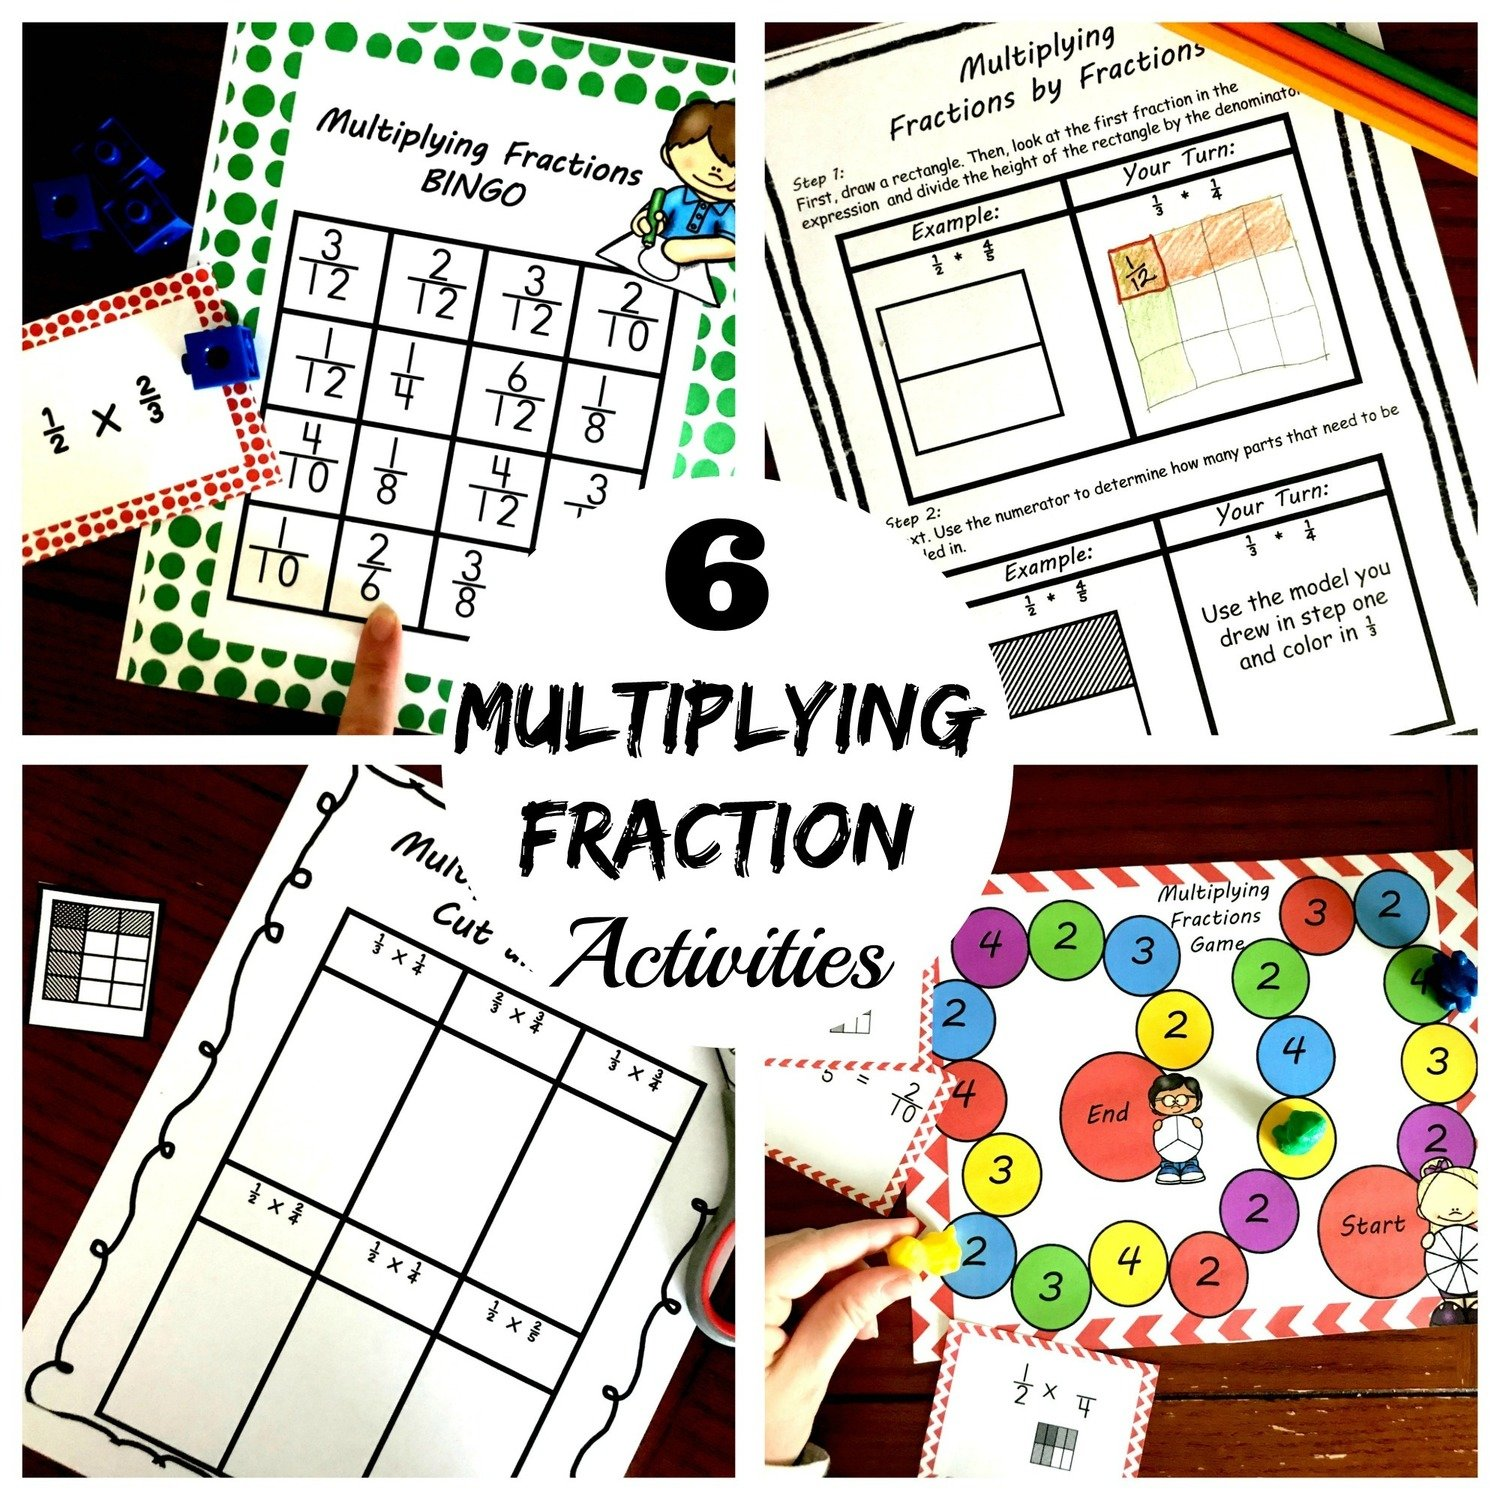 6 Multiplying Fractions by Fractions Activities